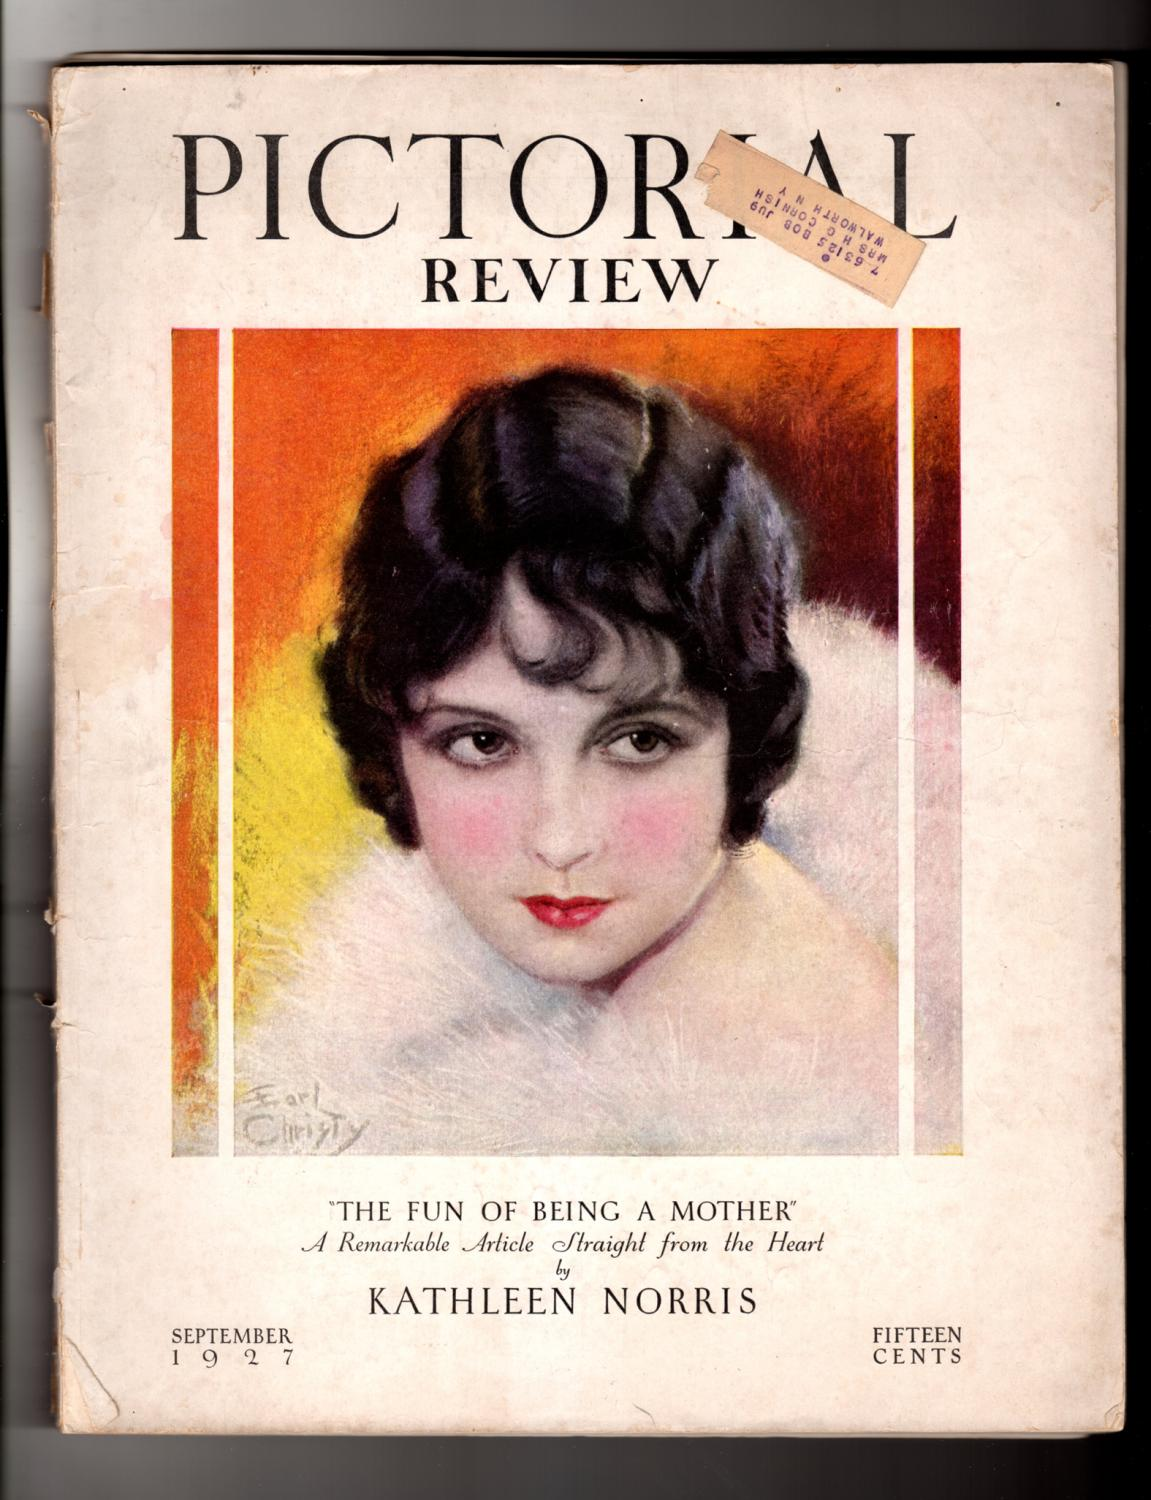 pictorial review september 1927 art deco flapper vintage romance fiction vintage paper dolls charles ransom chickering arthur dove joseph c lincoln clarence kelland bessie beatty